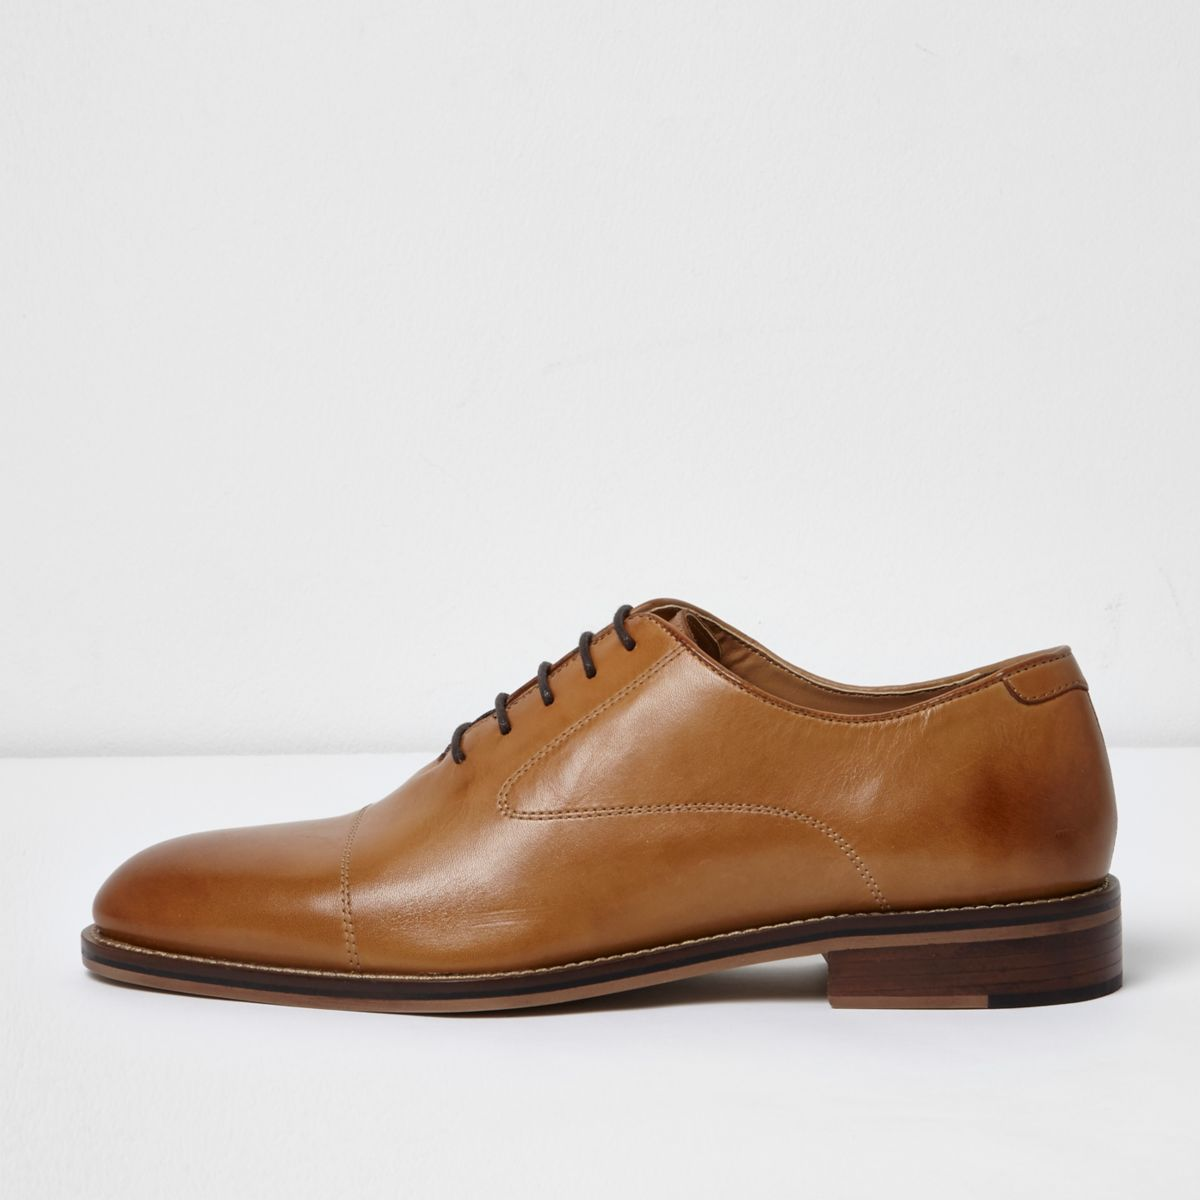 Tan lace-up Oxford shoes